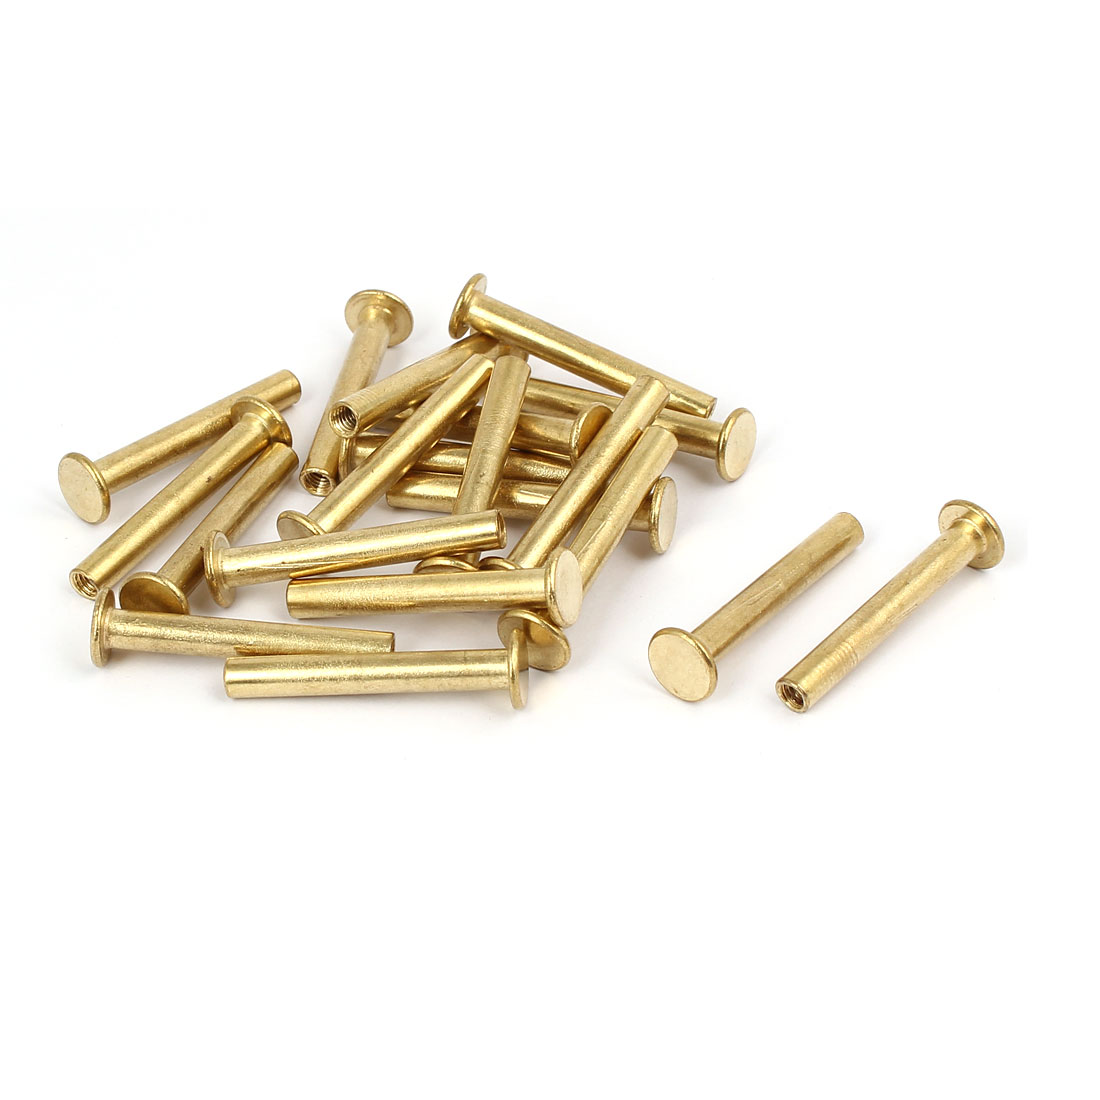 Photo Album Metal Brass Plated Binding Screw Post Barrel Nut 5mmx35mm 20pcs